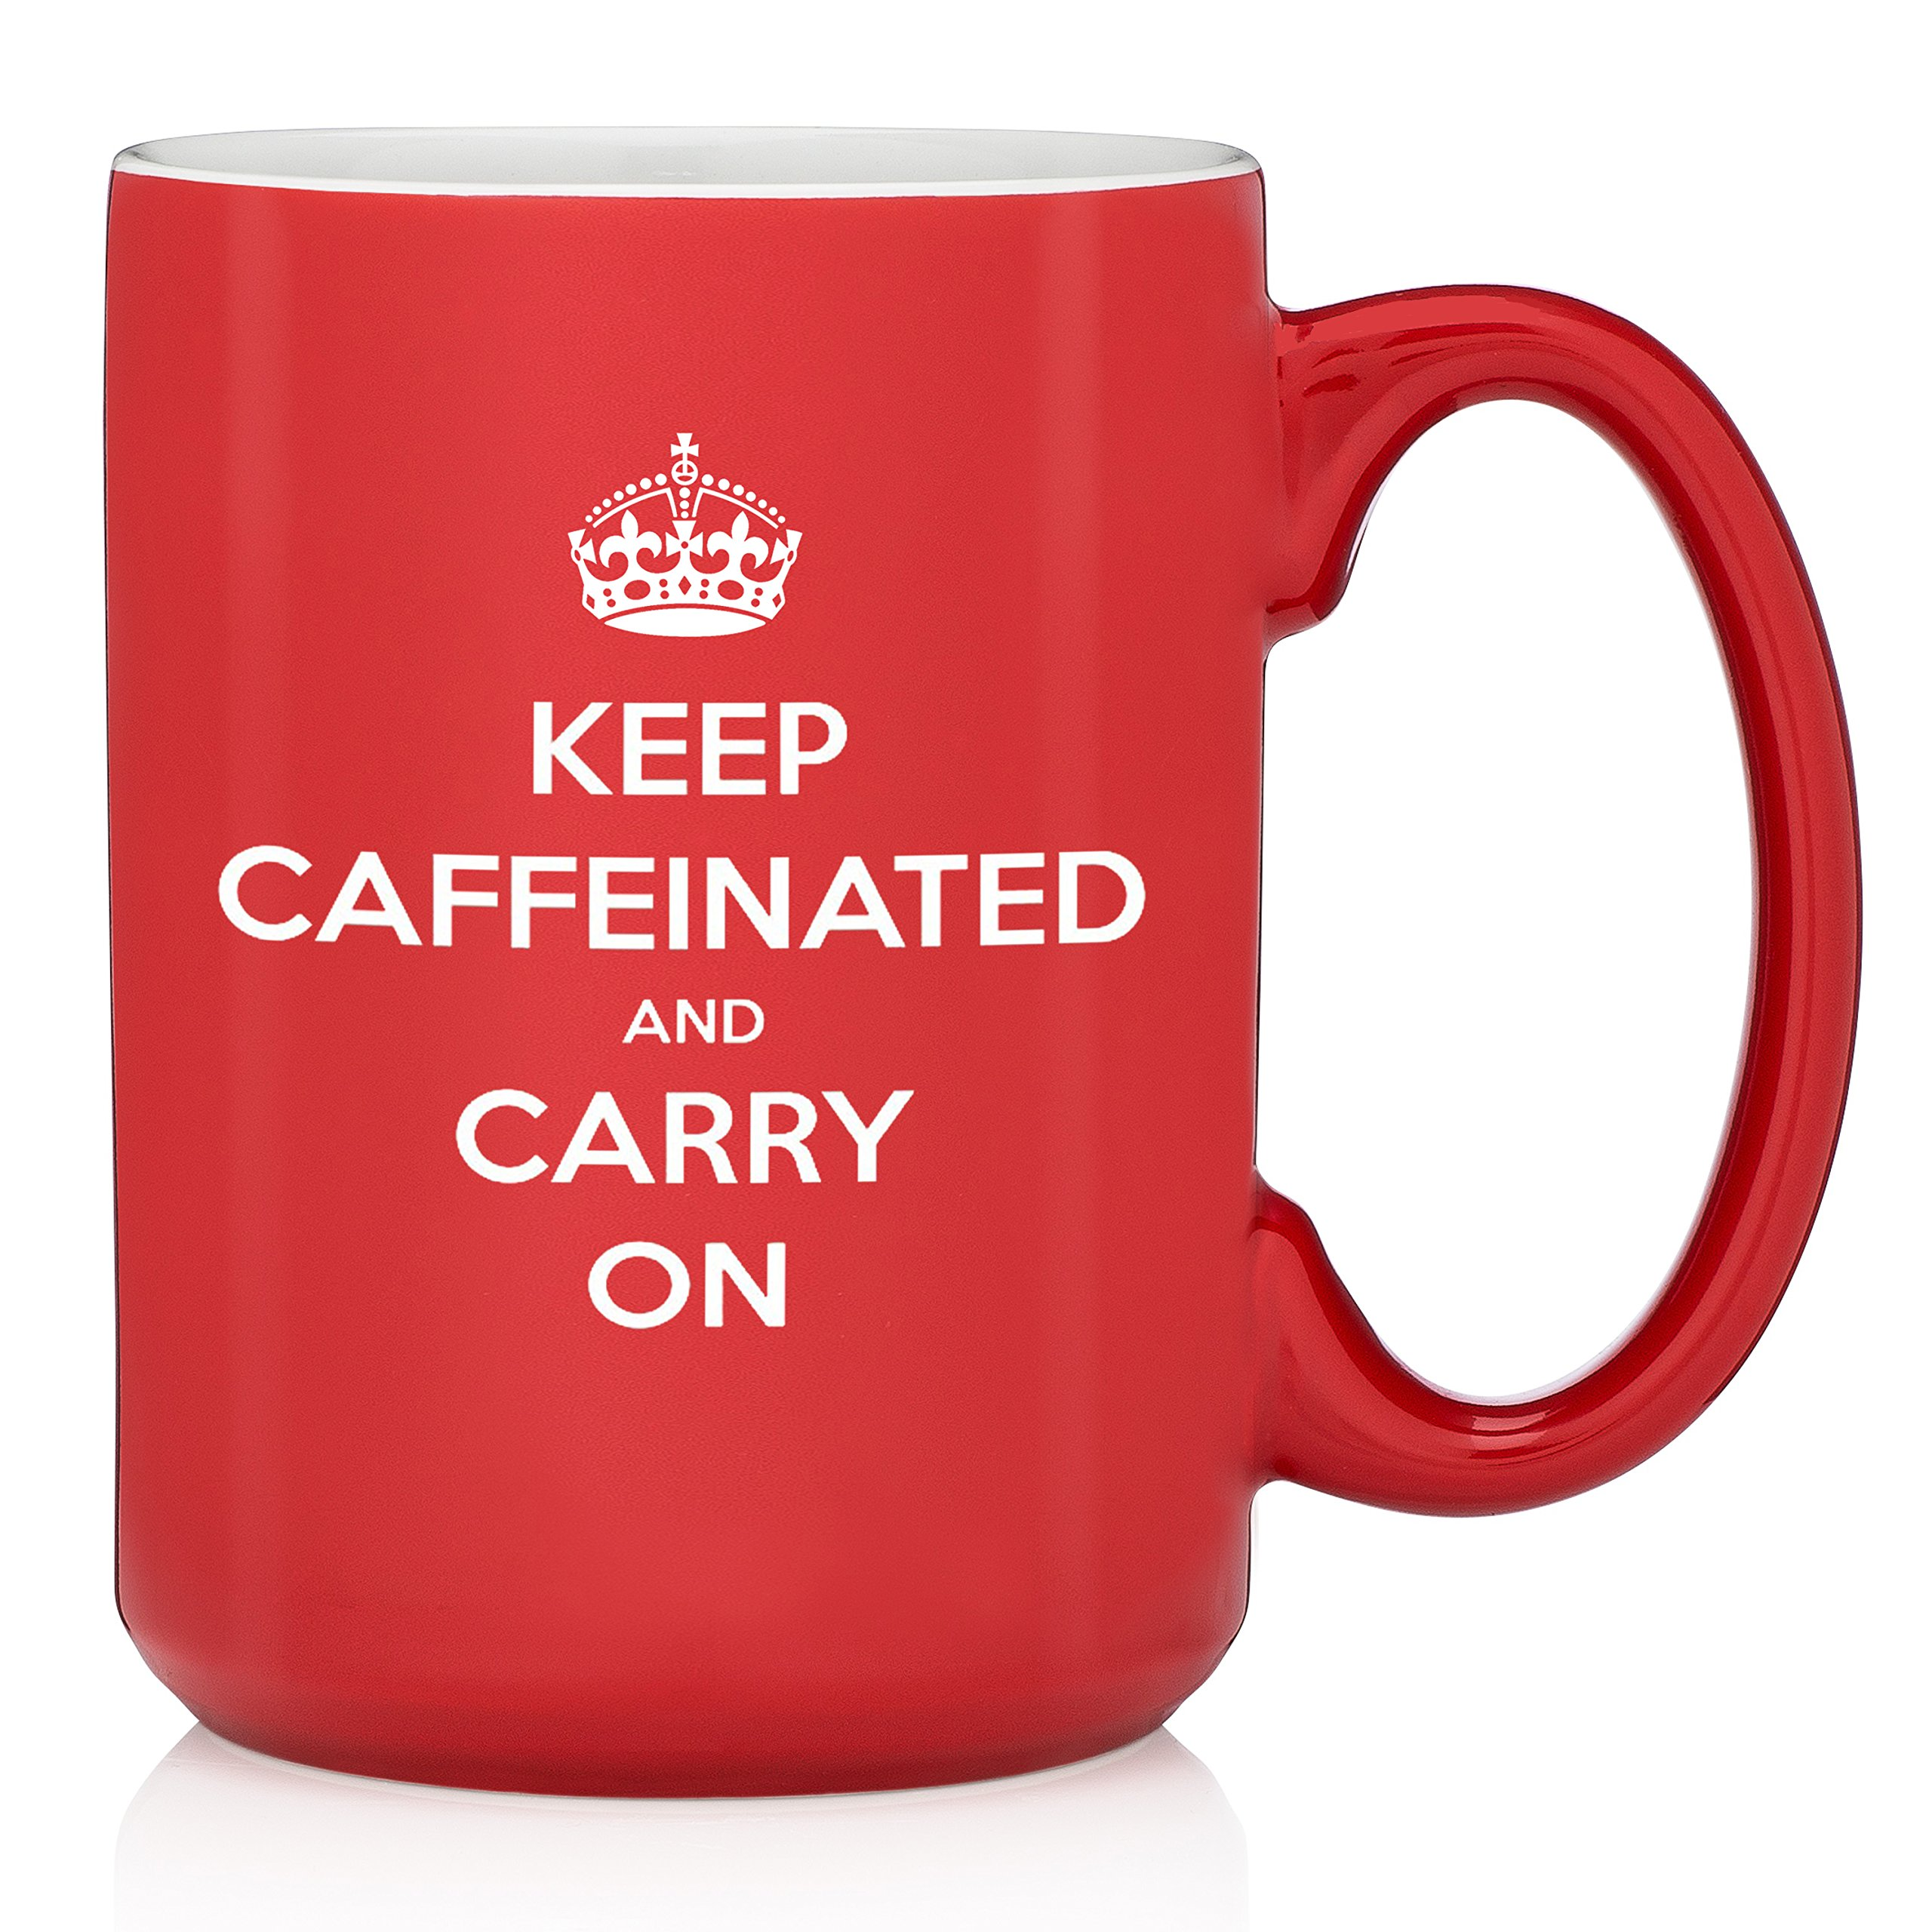 Keep Caffeinated And Carry On Funny Coffee Mug - Best Birthday Gifts For Men & Women - Unique Present Idea For Student, Office Coworker, Nurse - Novelty Cup For Mom, Dad, Son, Daughter, Friend -13.5oz